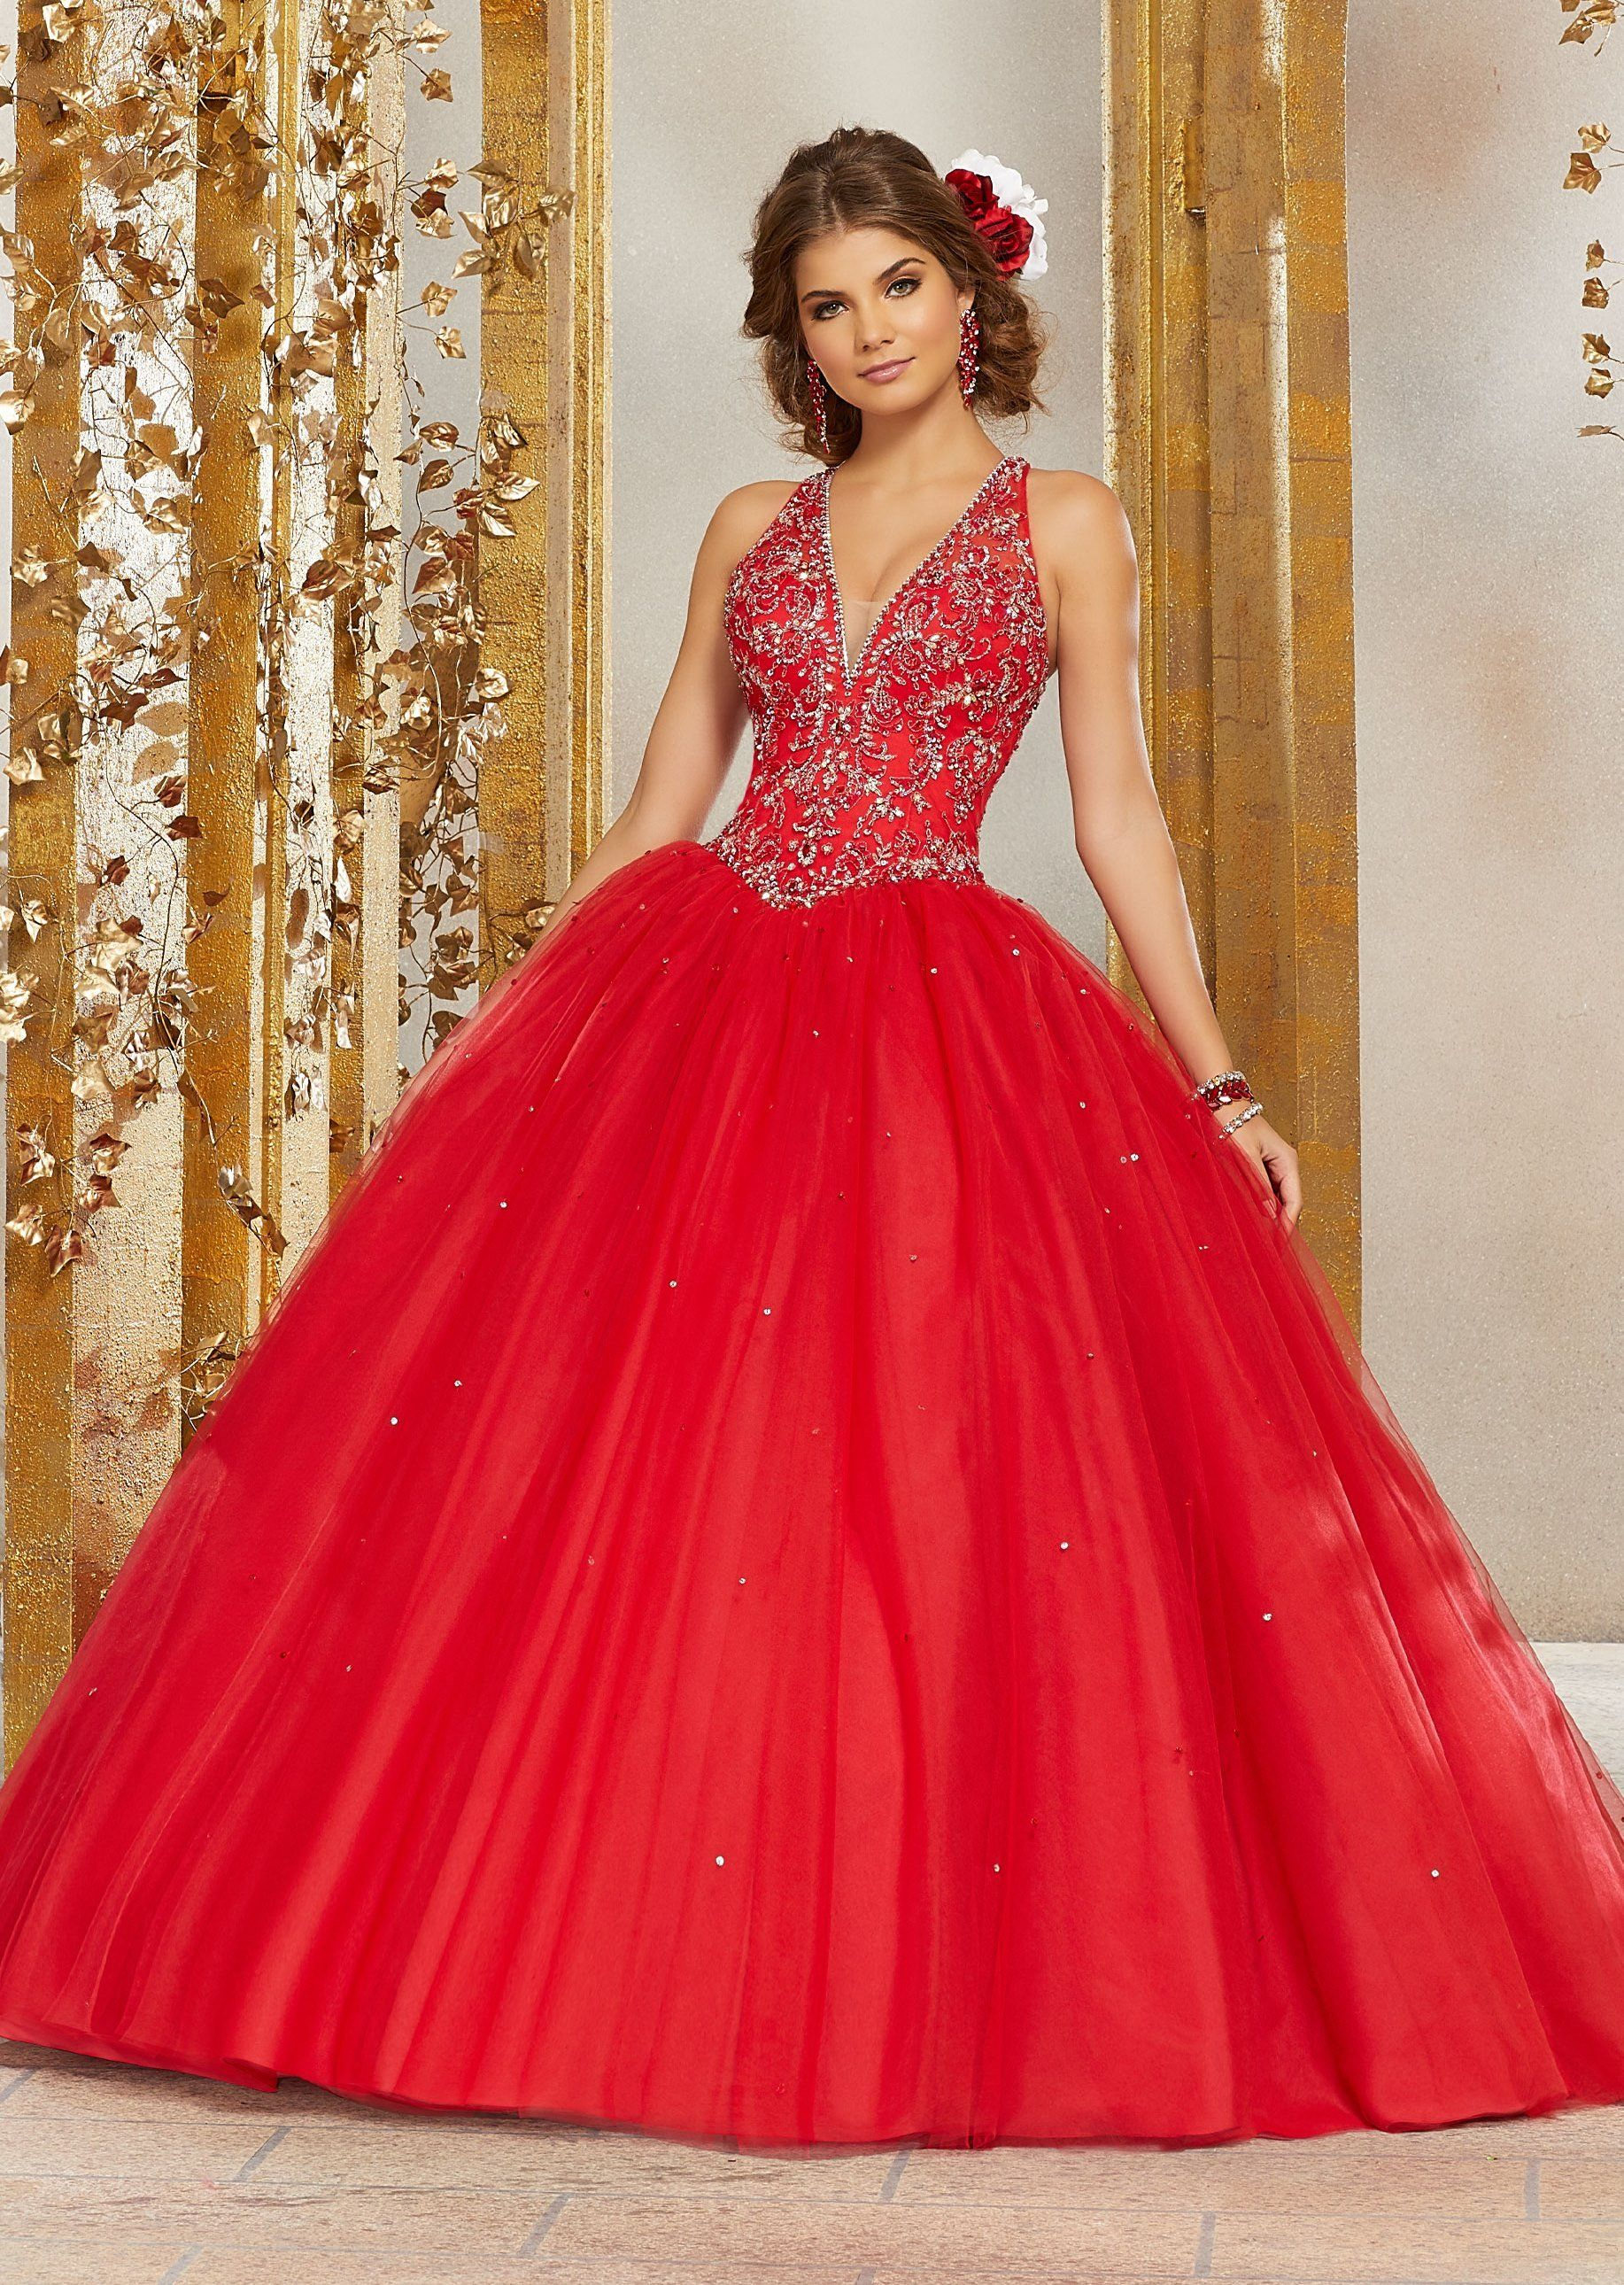 17fd57d4617 Bead Embroidered Quinceanera Dress by Mori Lee Valencia 60076 in ...